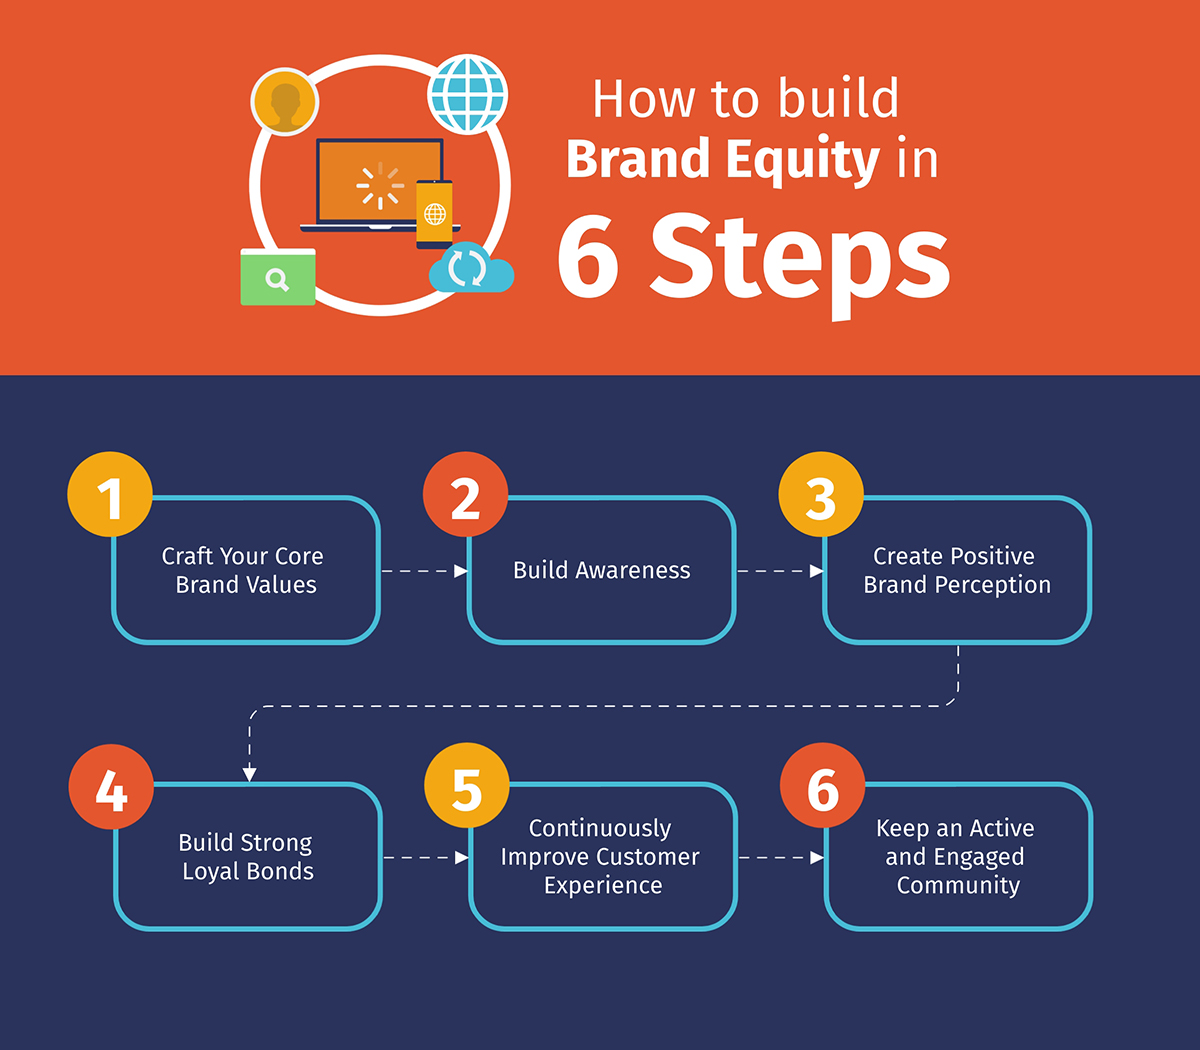 A process infographic showcasing how to build brand equity in six steps.